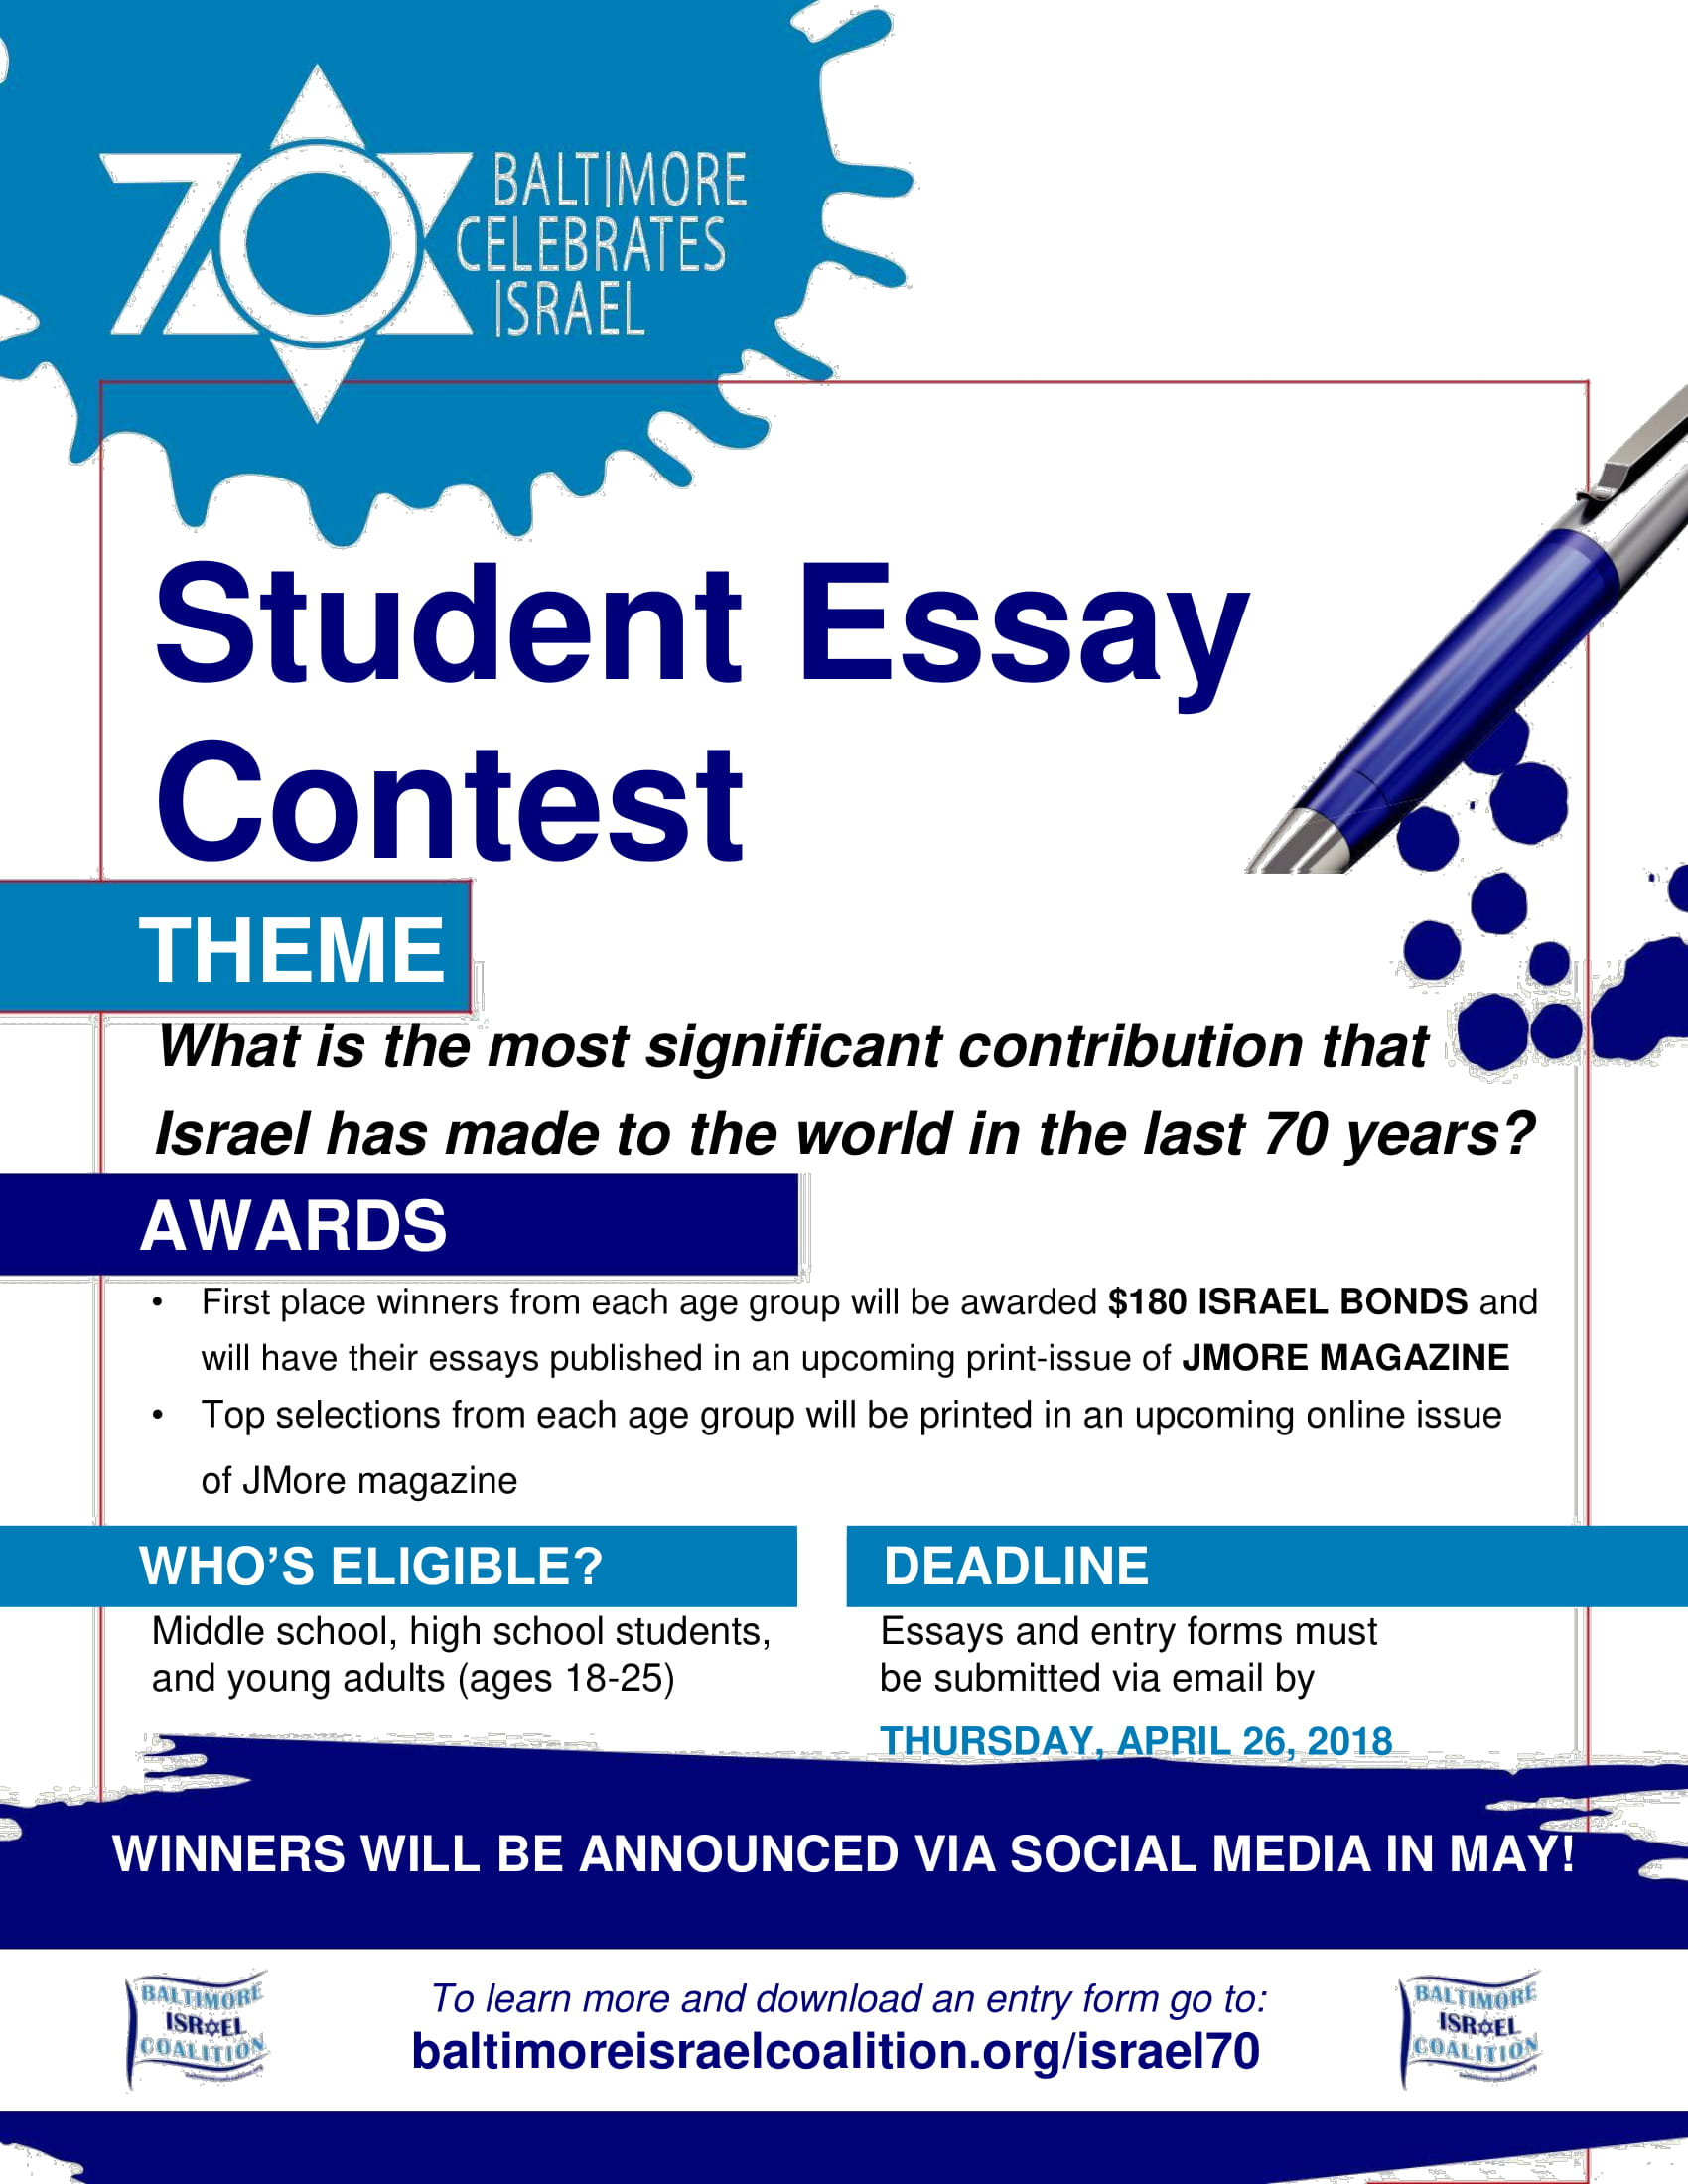 Proposal Essay Format To Be Considered For This Contest Essays Must Be Received By April    A Completed Entry Form Must Accompany Every Submission Reflection Paper Essay also Persuasive Essay Topics High School Students  Essay Contest Celebrating Israel  Baltimore Israel Coalition How To Make A Thesis Statement For An Essay